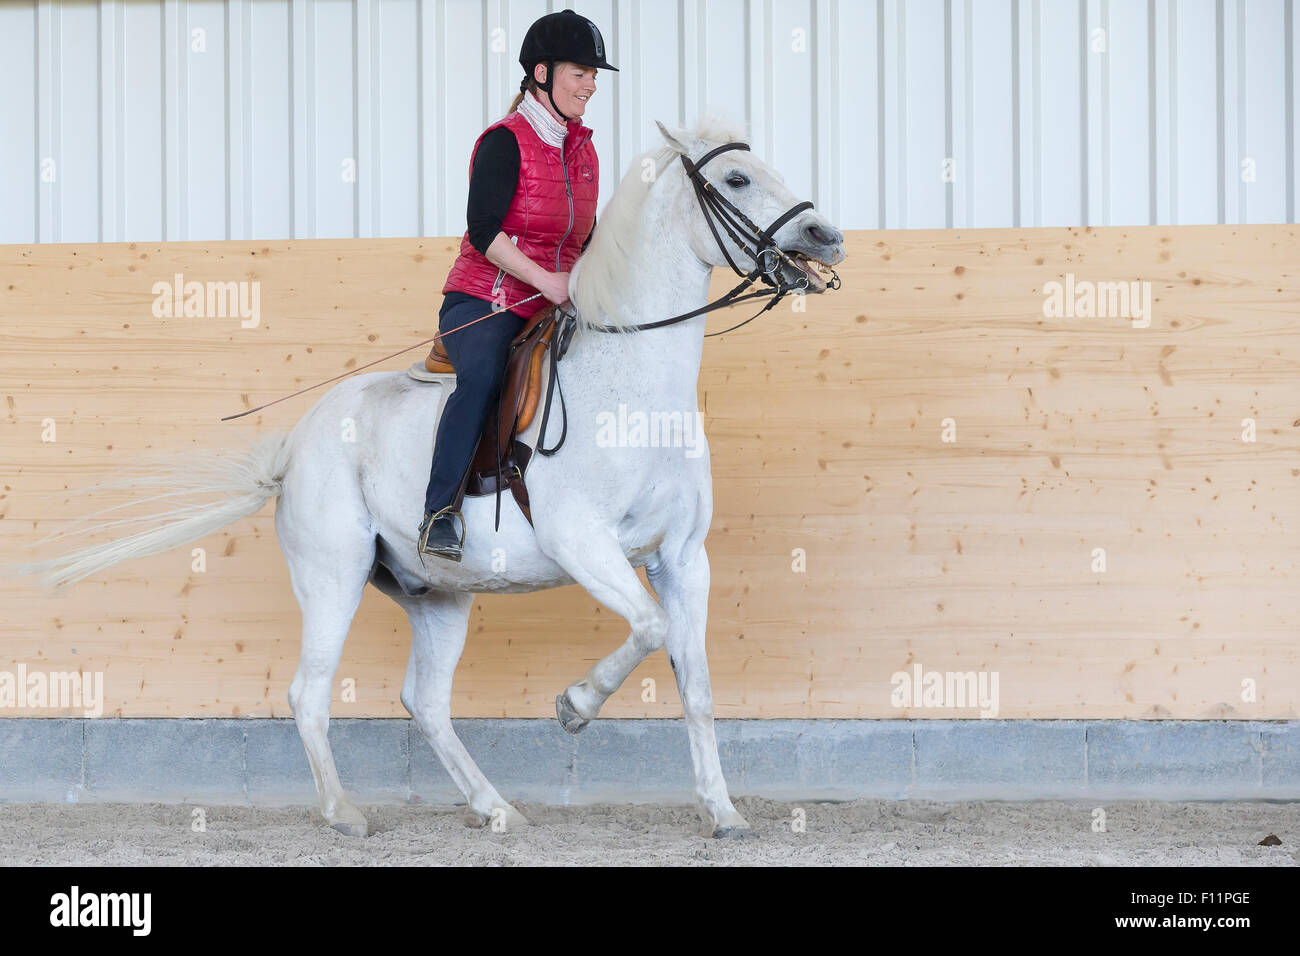 German Riding Pony White pony showing resistance against its rider - Stock Image